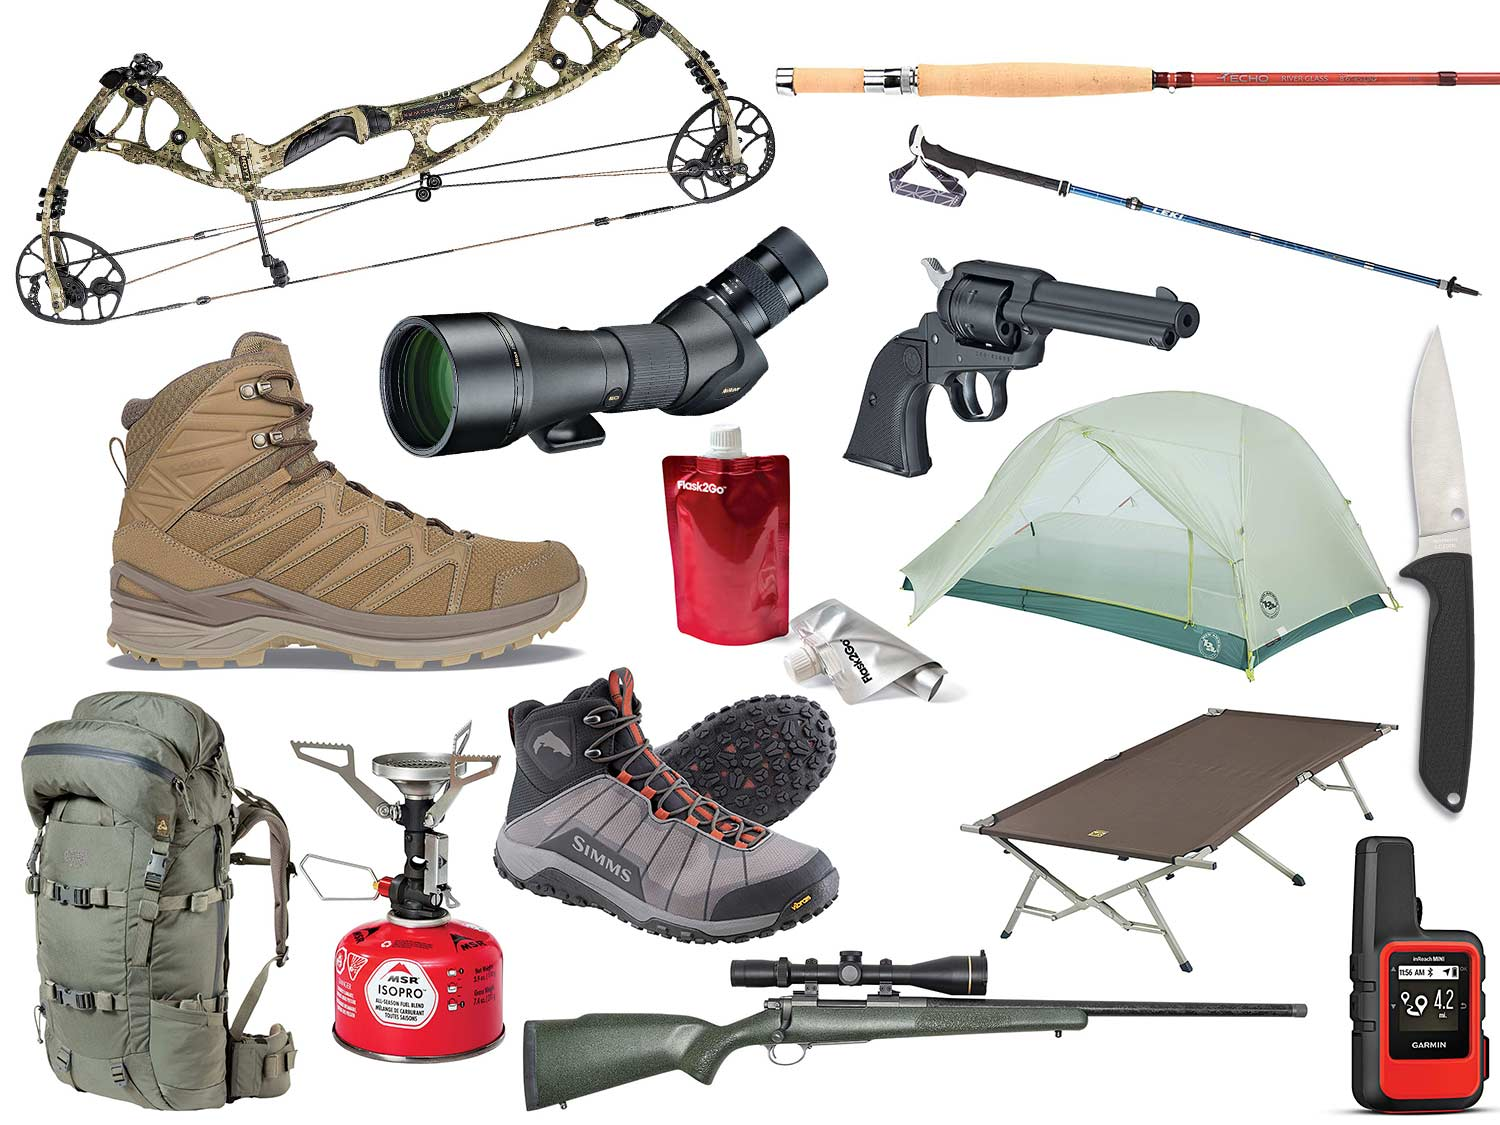 The Best Backcountry Hunting, Fishing, and Camping Gear of the Year